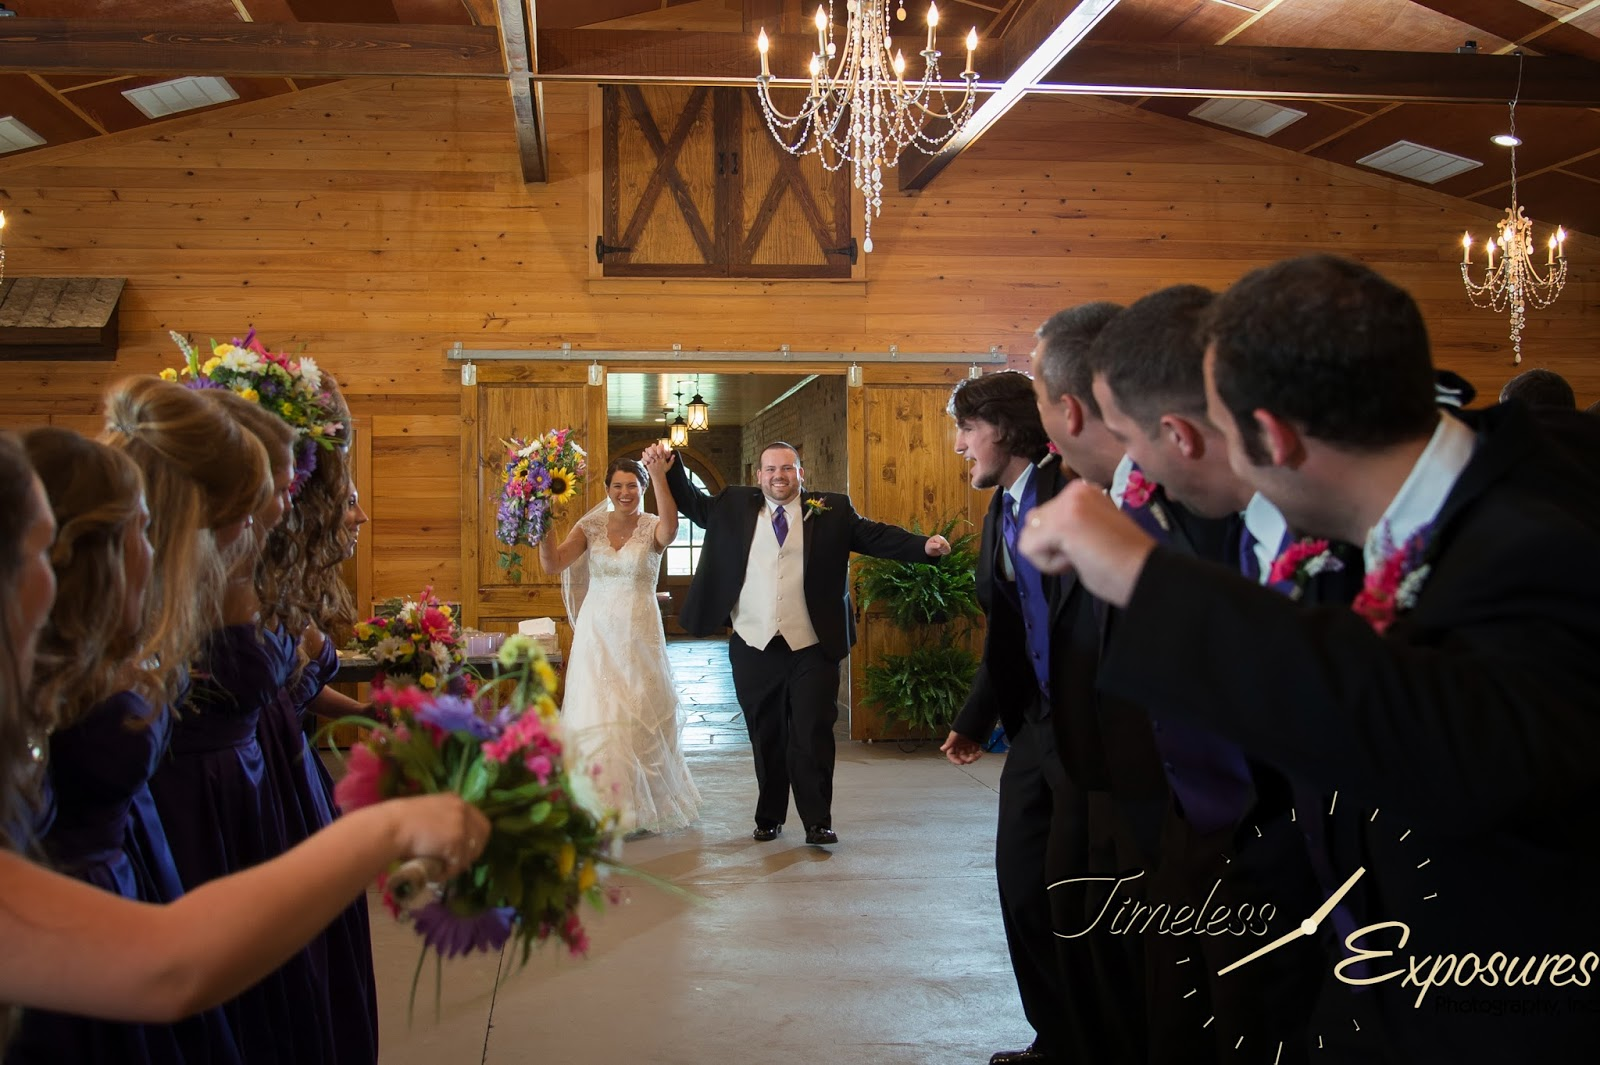 Wedding Vendors Who Made Their Day Beautiful